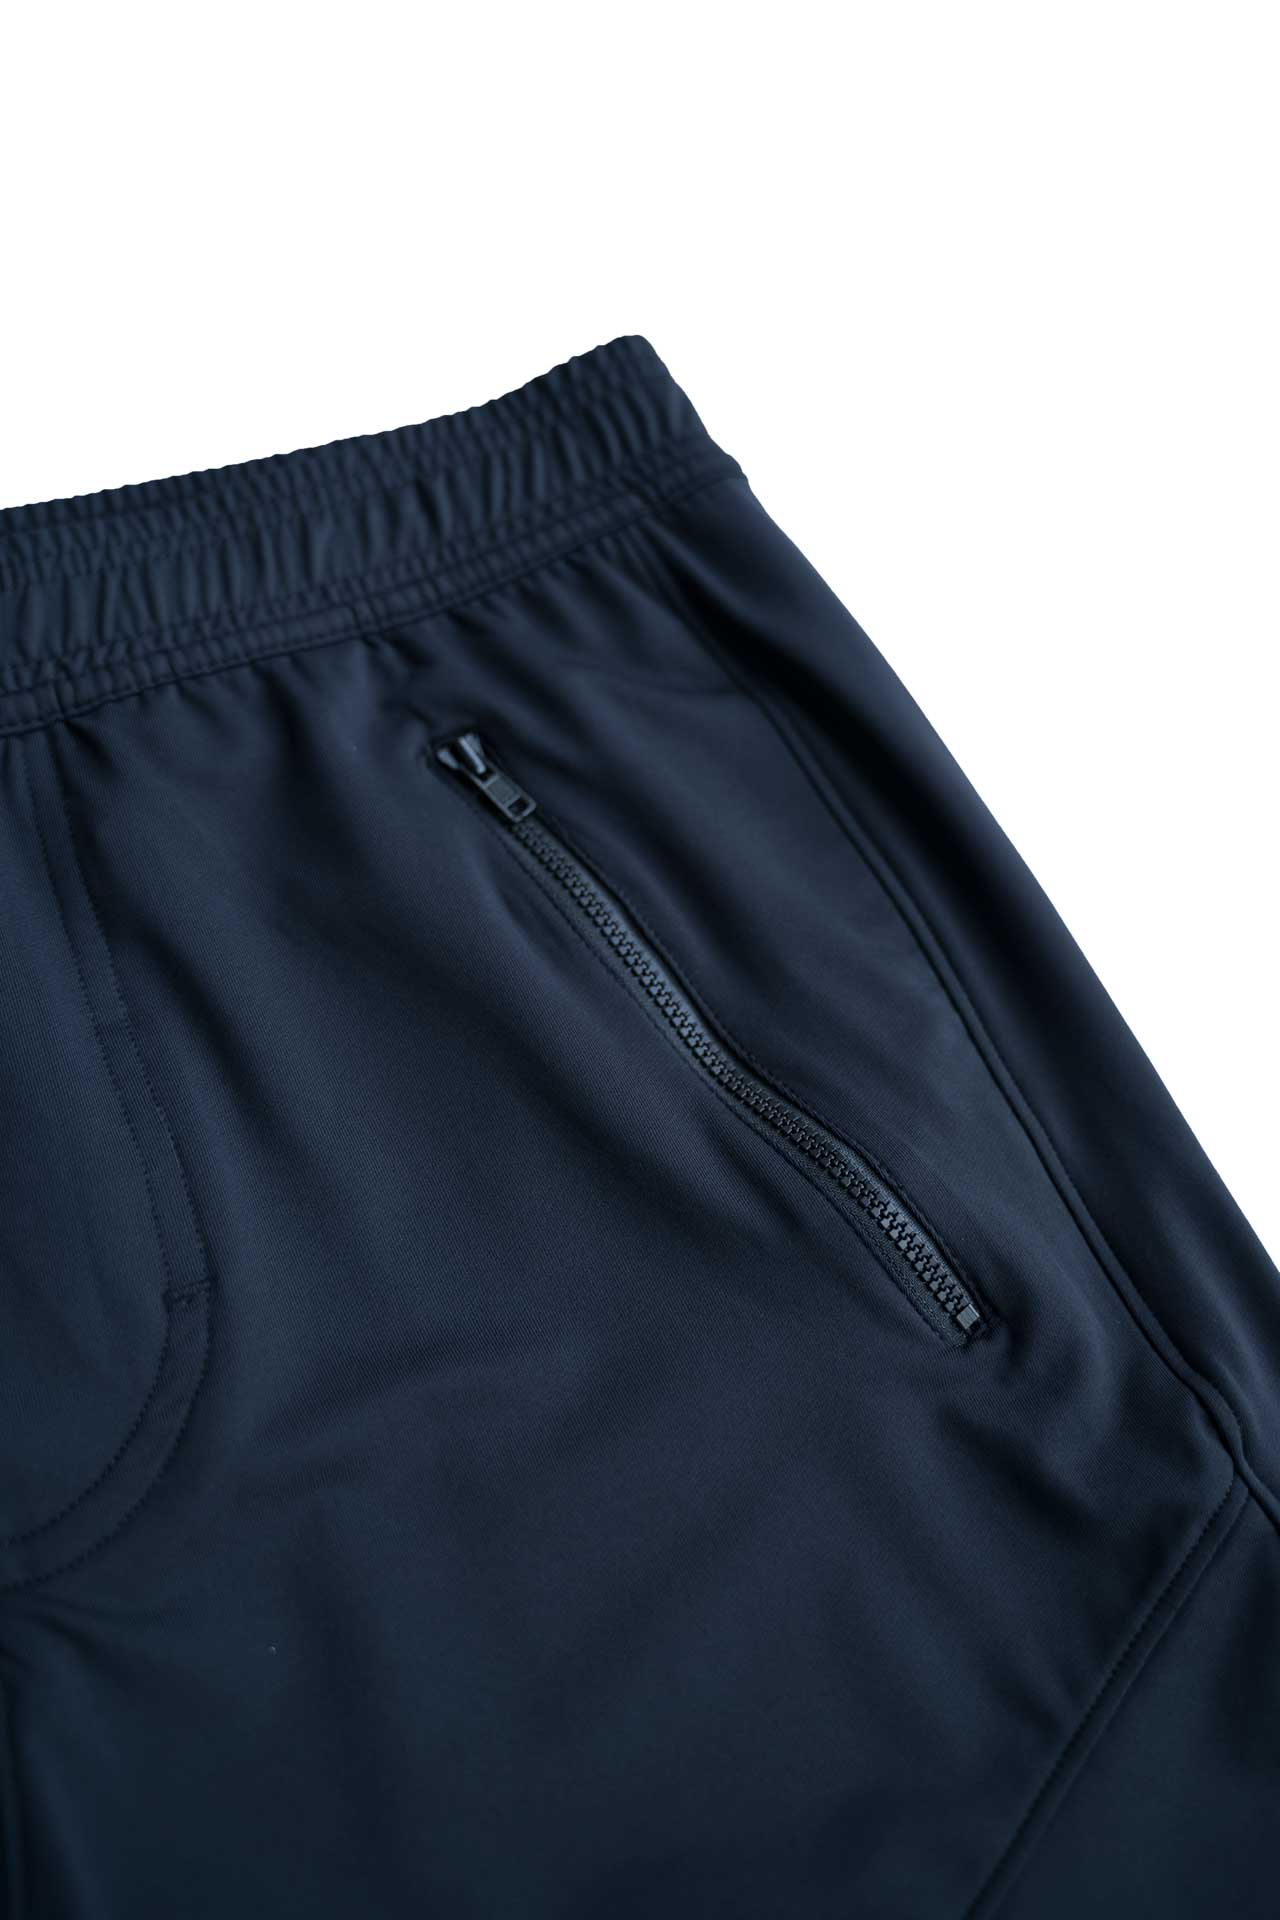 LIGHTWEIGHT -TECH STRETCH TRAINING SHORTS - BLACK